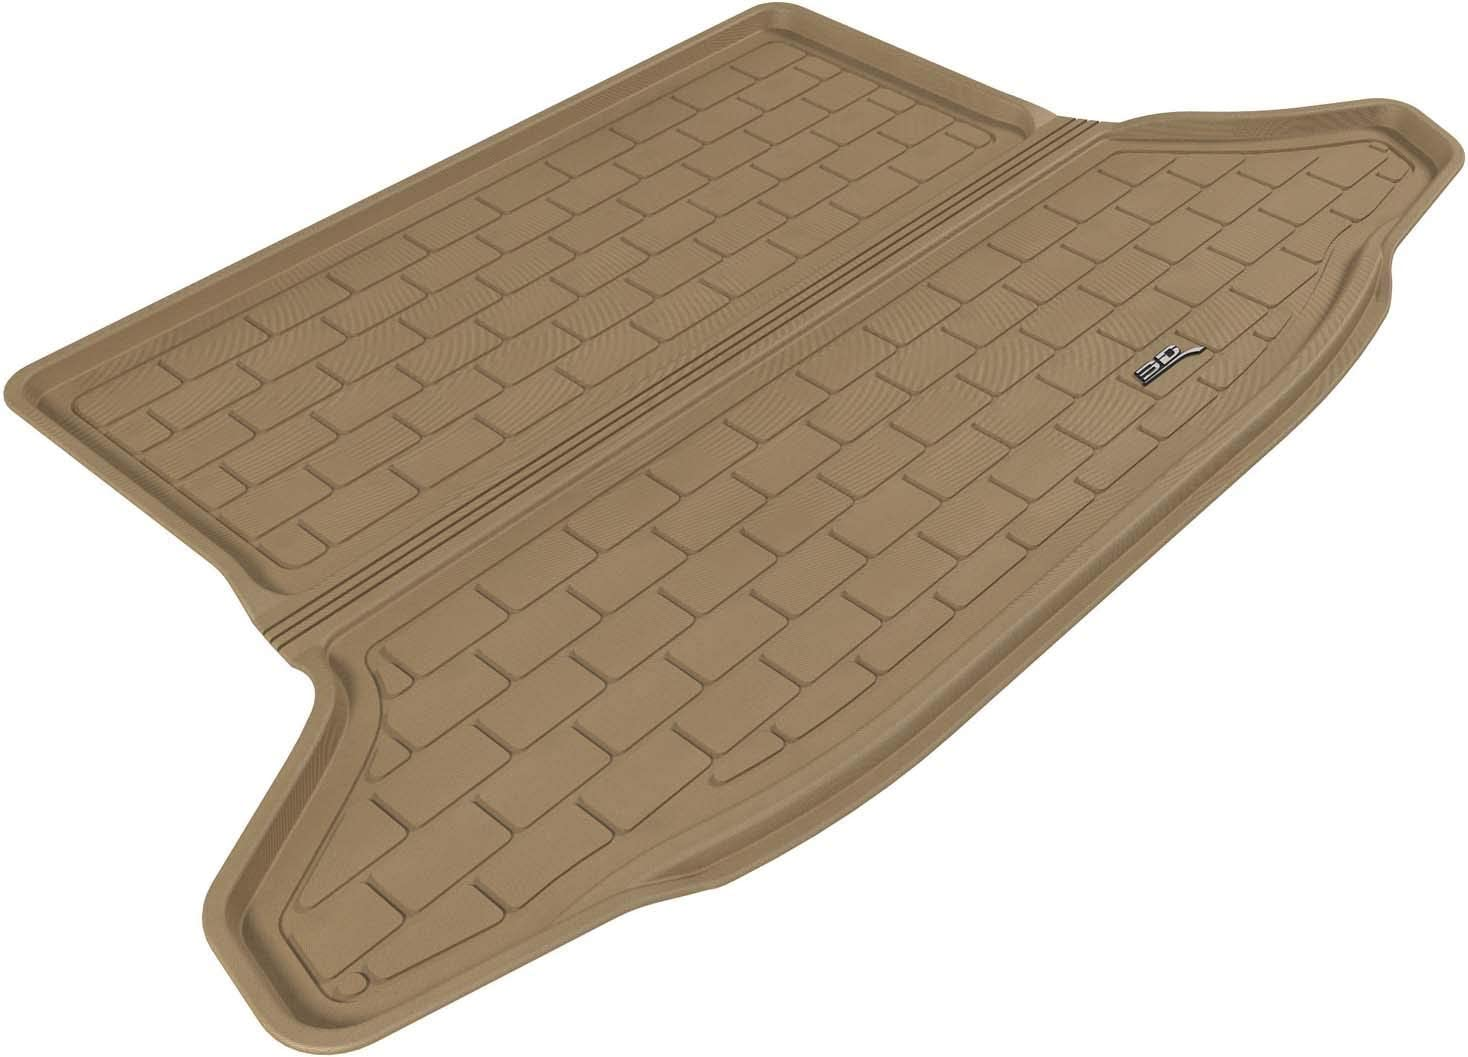 Gray Kagu Rubber 3D MAXpider Custom Fit All-Weather Cargo Liner for Select Lexus CT Hybrid Models